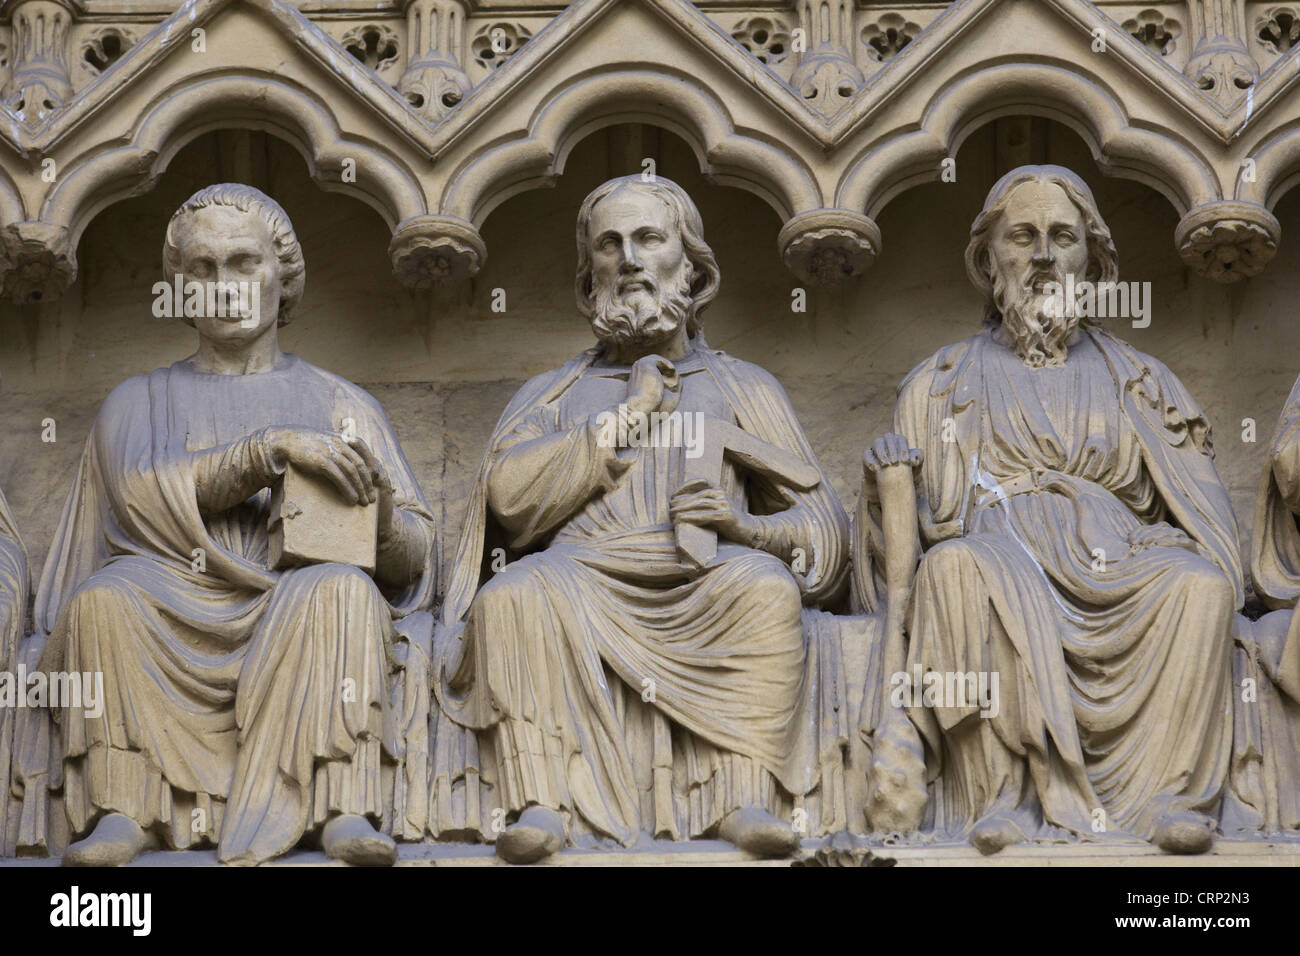 Westminster Abbey sculptures. London. England - Stock Image